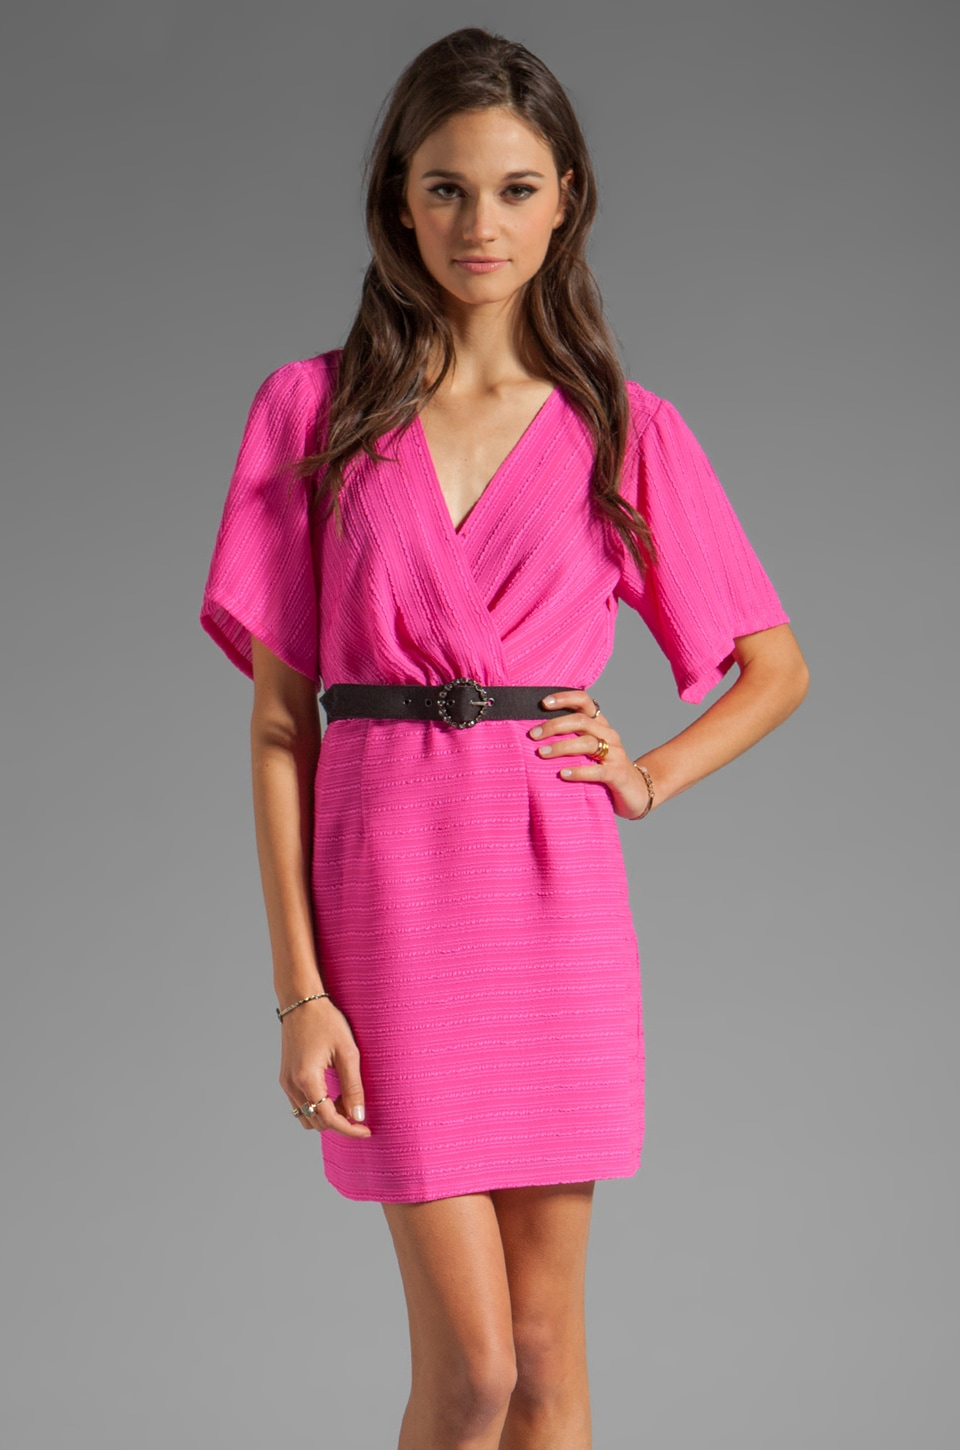 Nanette Lepore Geisha Girl Stripe Dress in Electric Pink